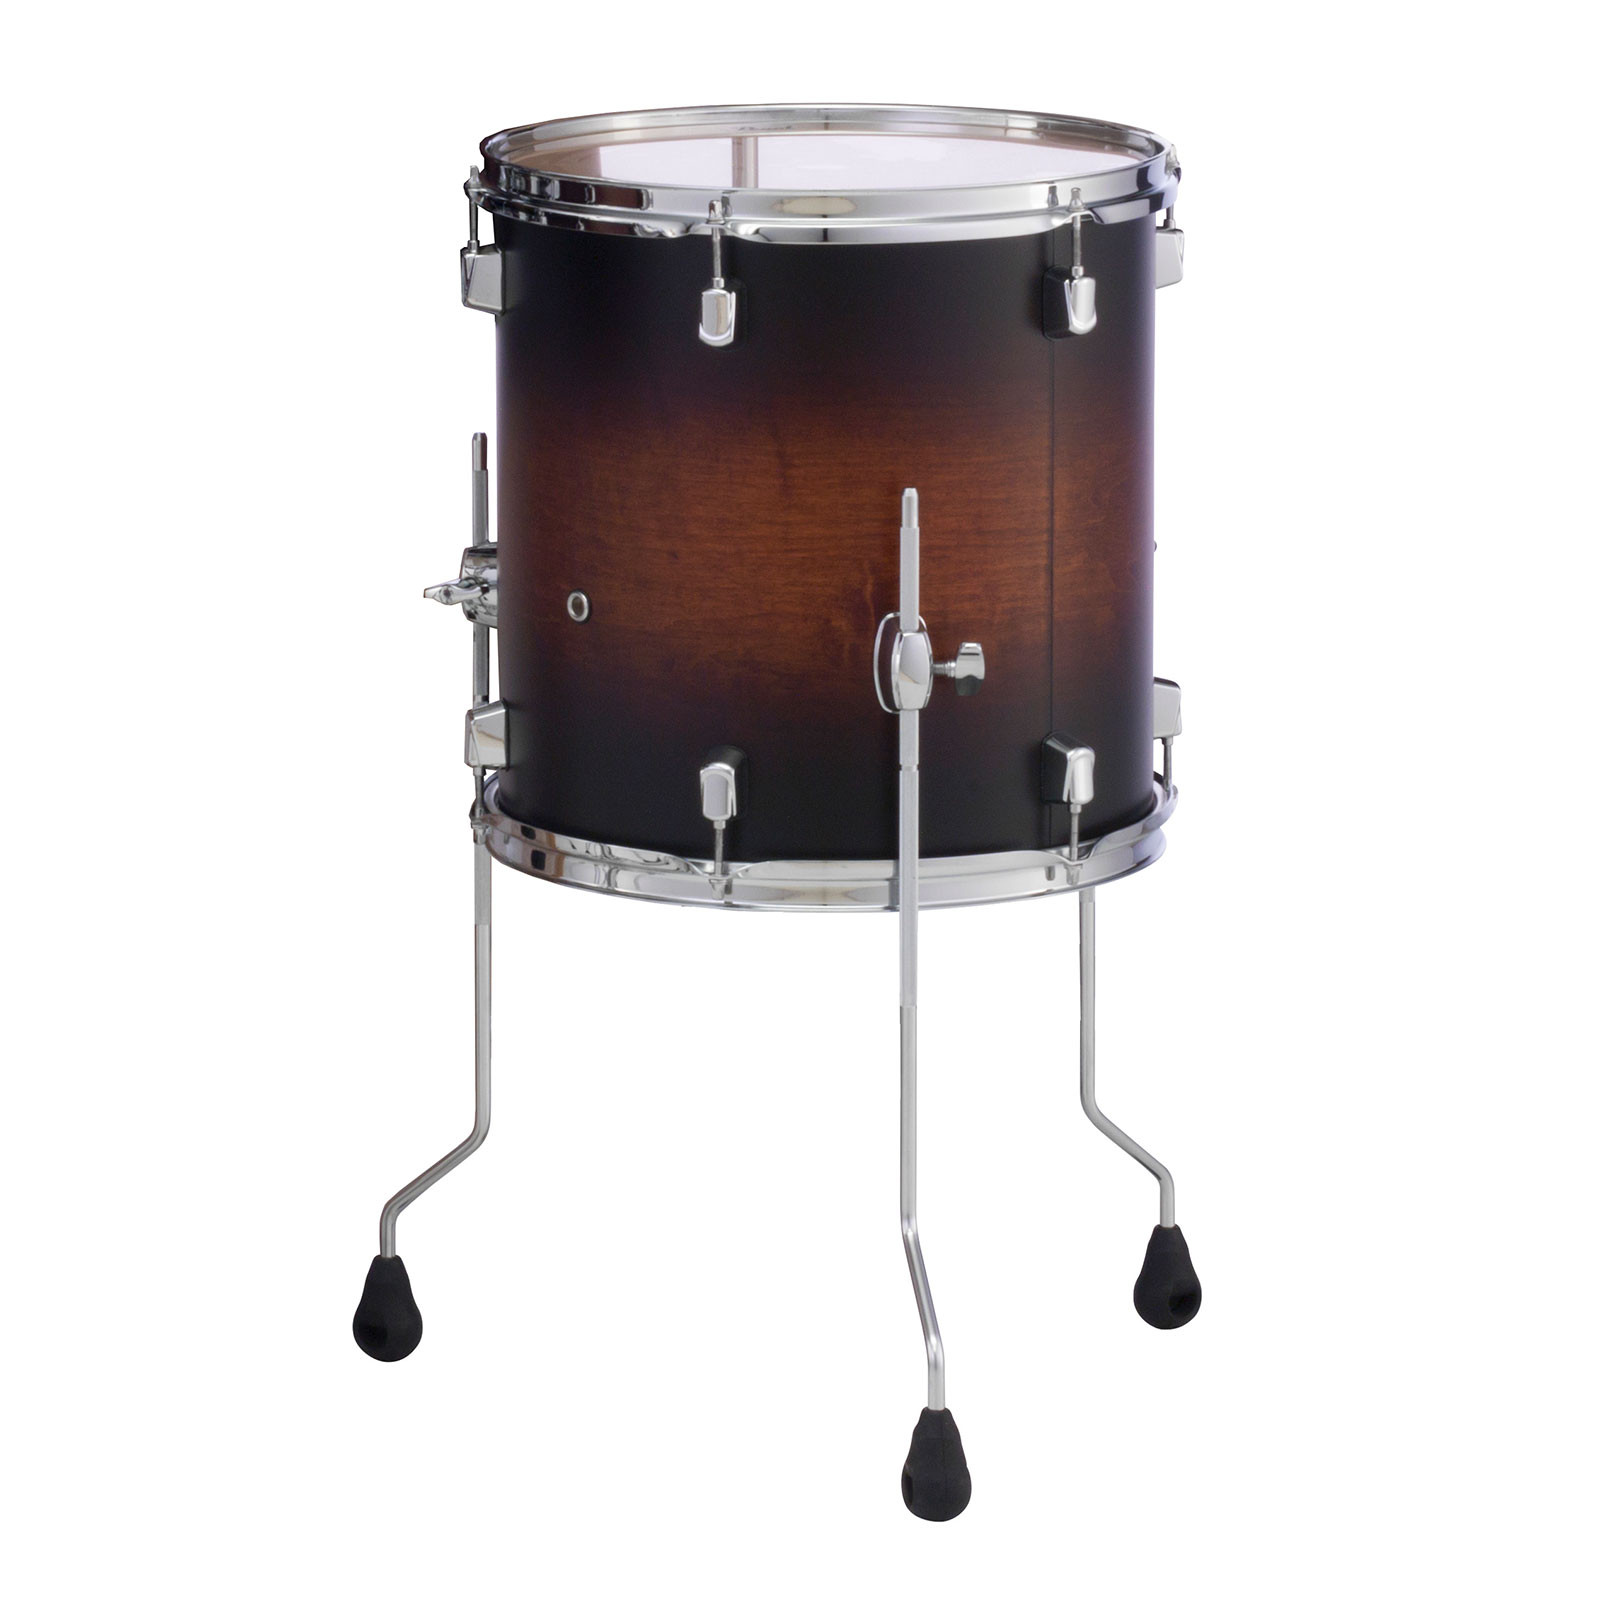 Pearl Dmp Decade Maple 14 Quot X14 Quot Floor Tom Drums On Sale